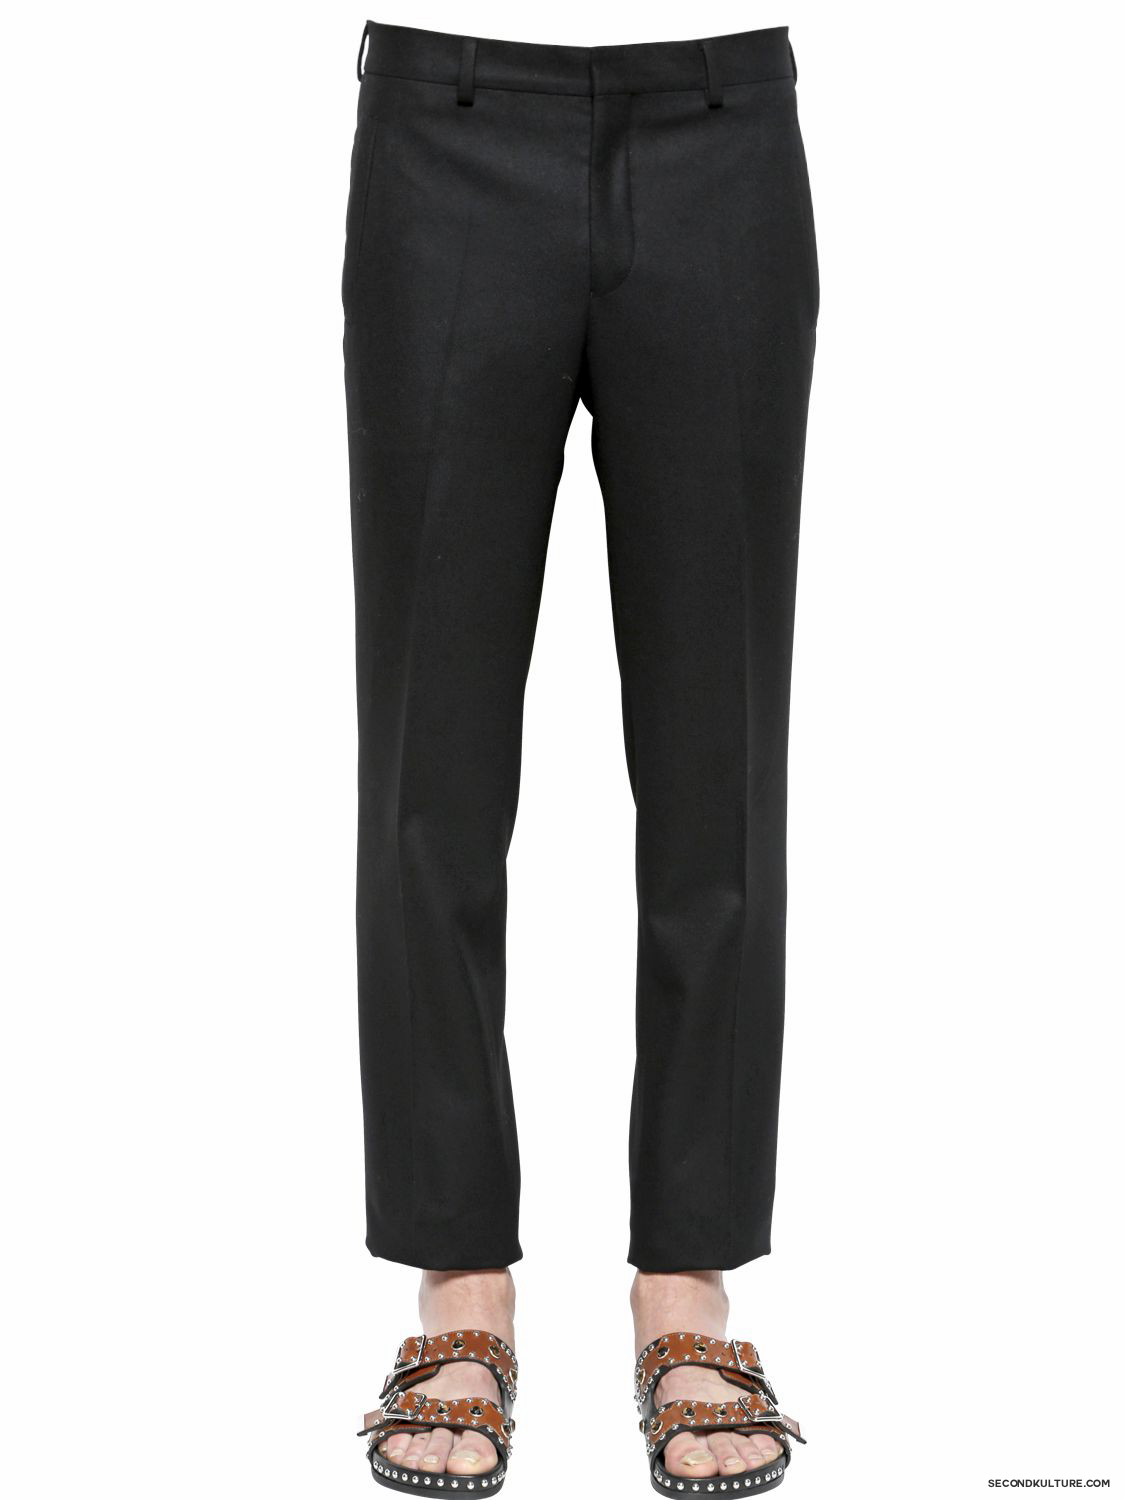 Givenchy-19cm-Pocket-Loop-Wool-Flannel-Trousers-Fall-Winter-2015-1